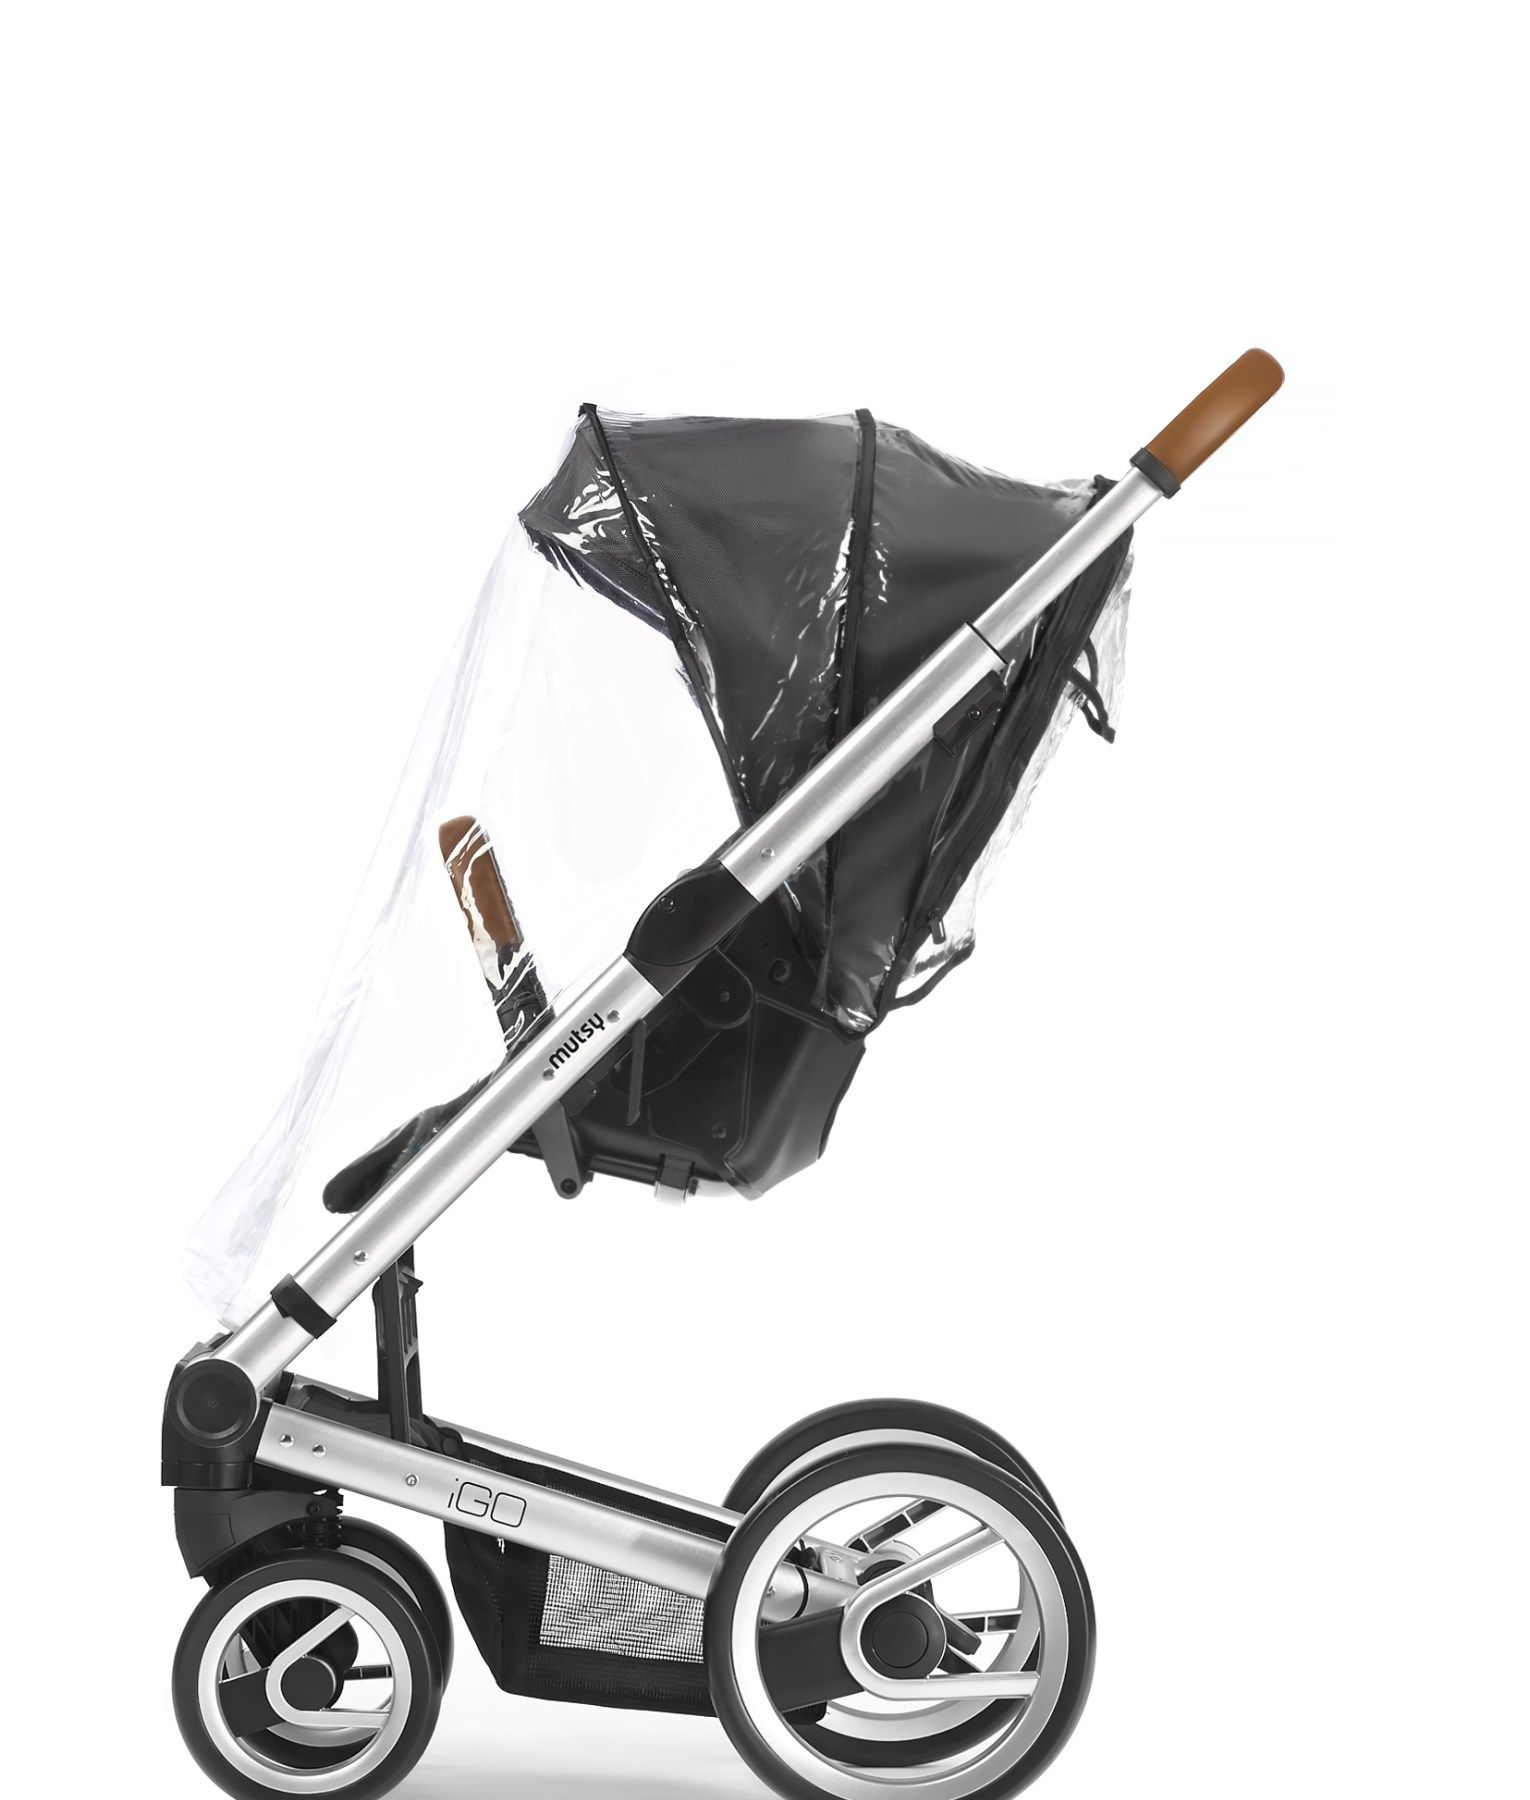 Pin on Stroller Accessories